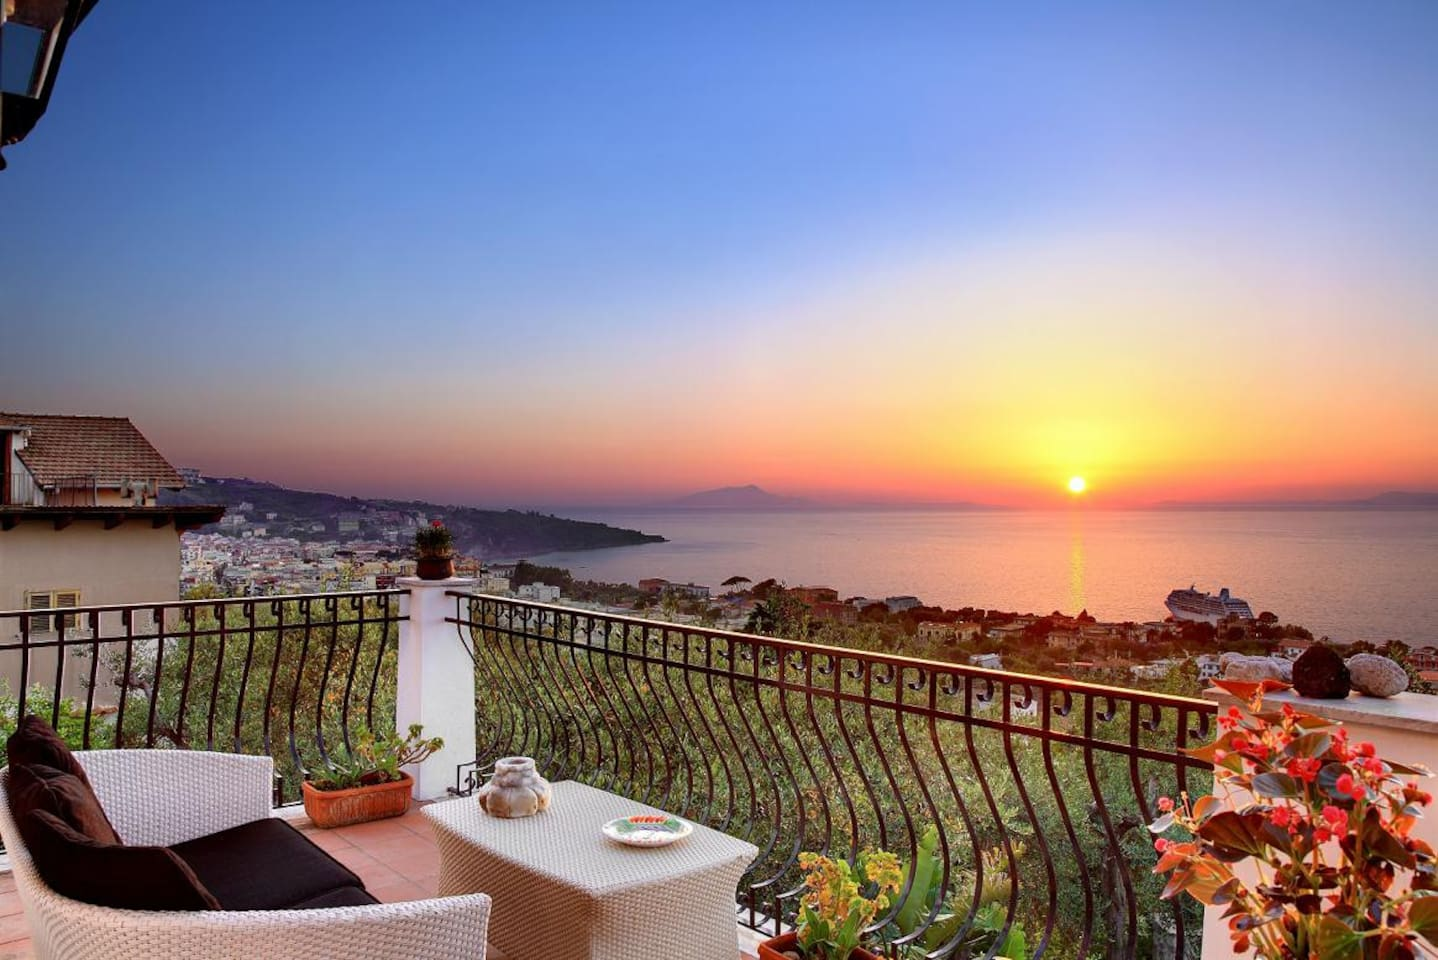 private terrace sitting cornetr - sunset view!